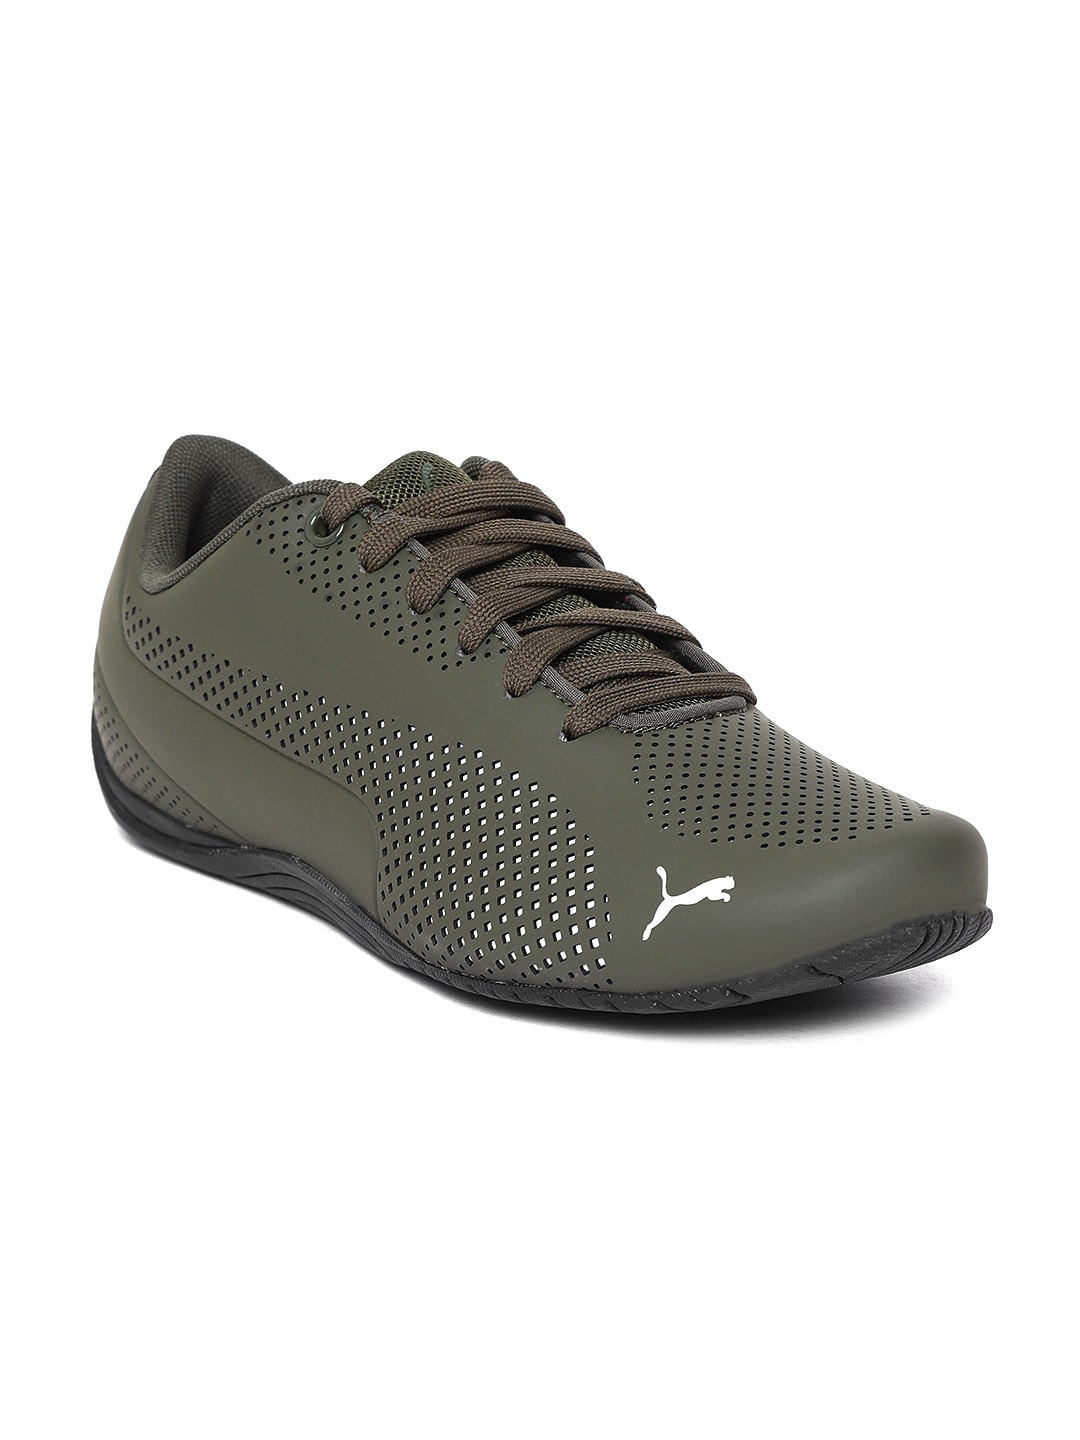 Puma Ferrari Limited Edition - Buy Puma Ferrari Limited Edition online in  India 12424c48a